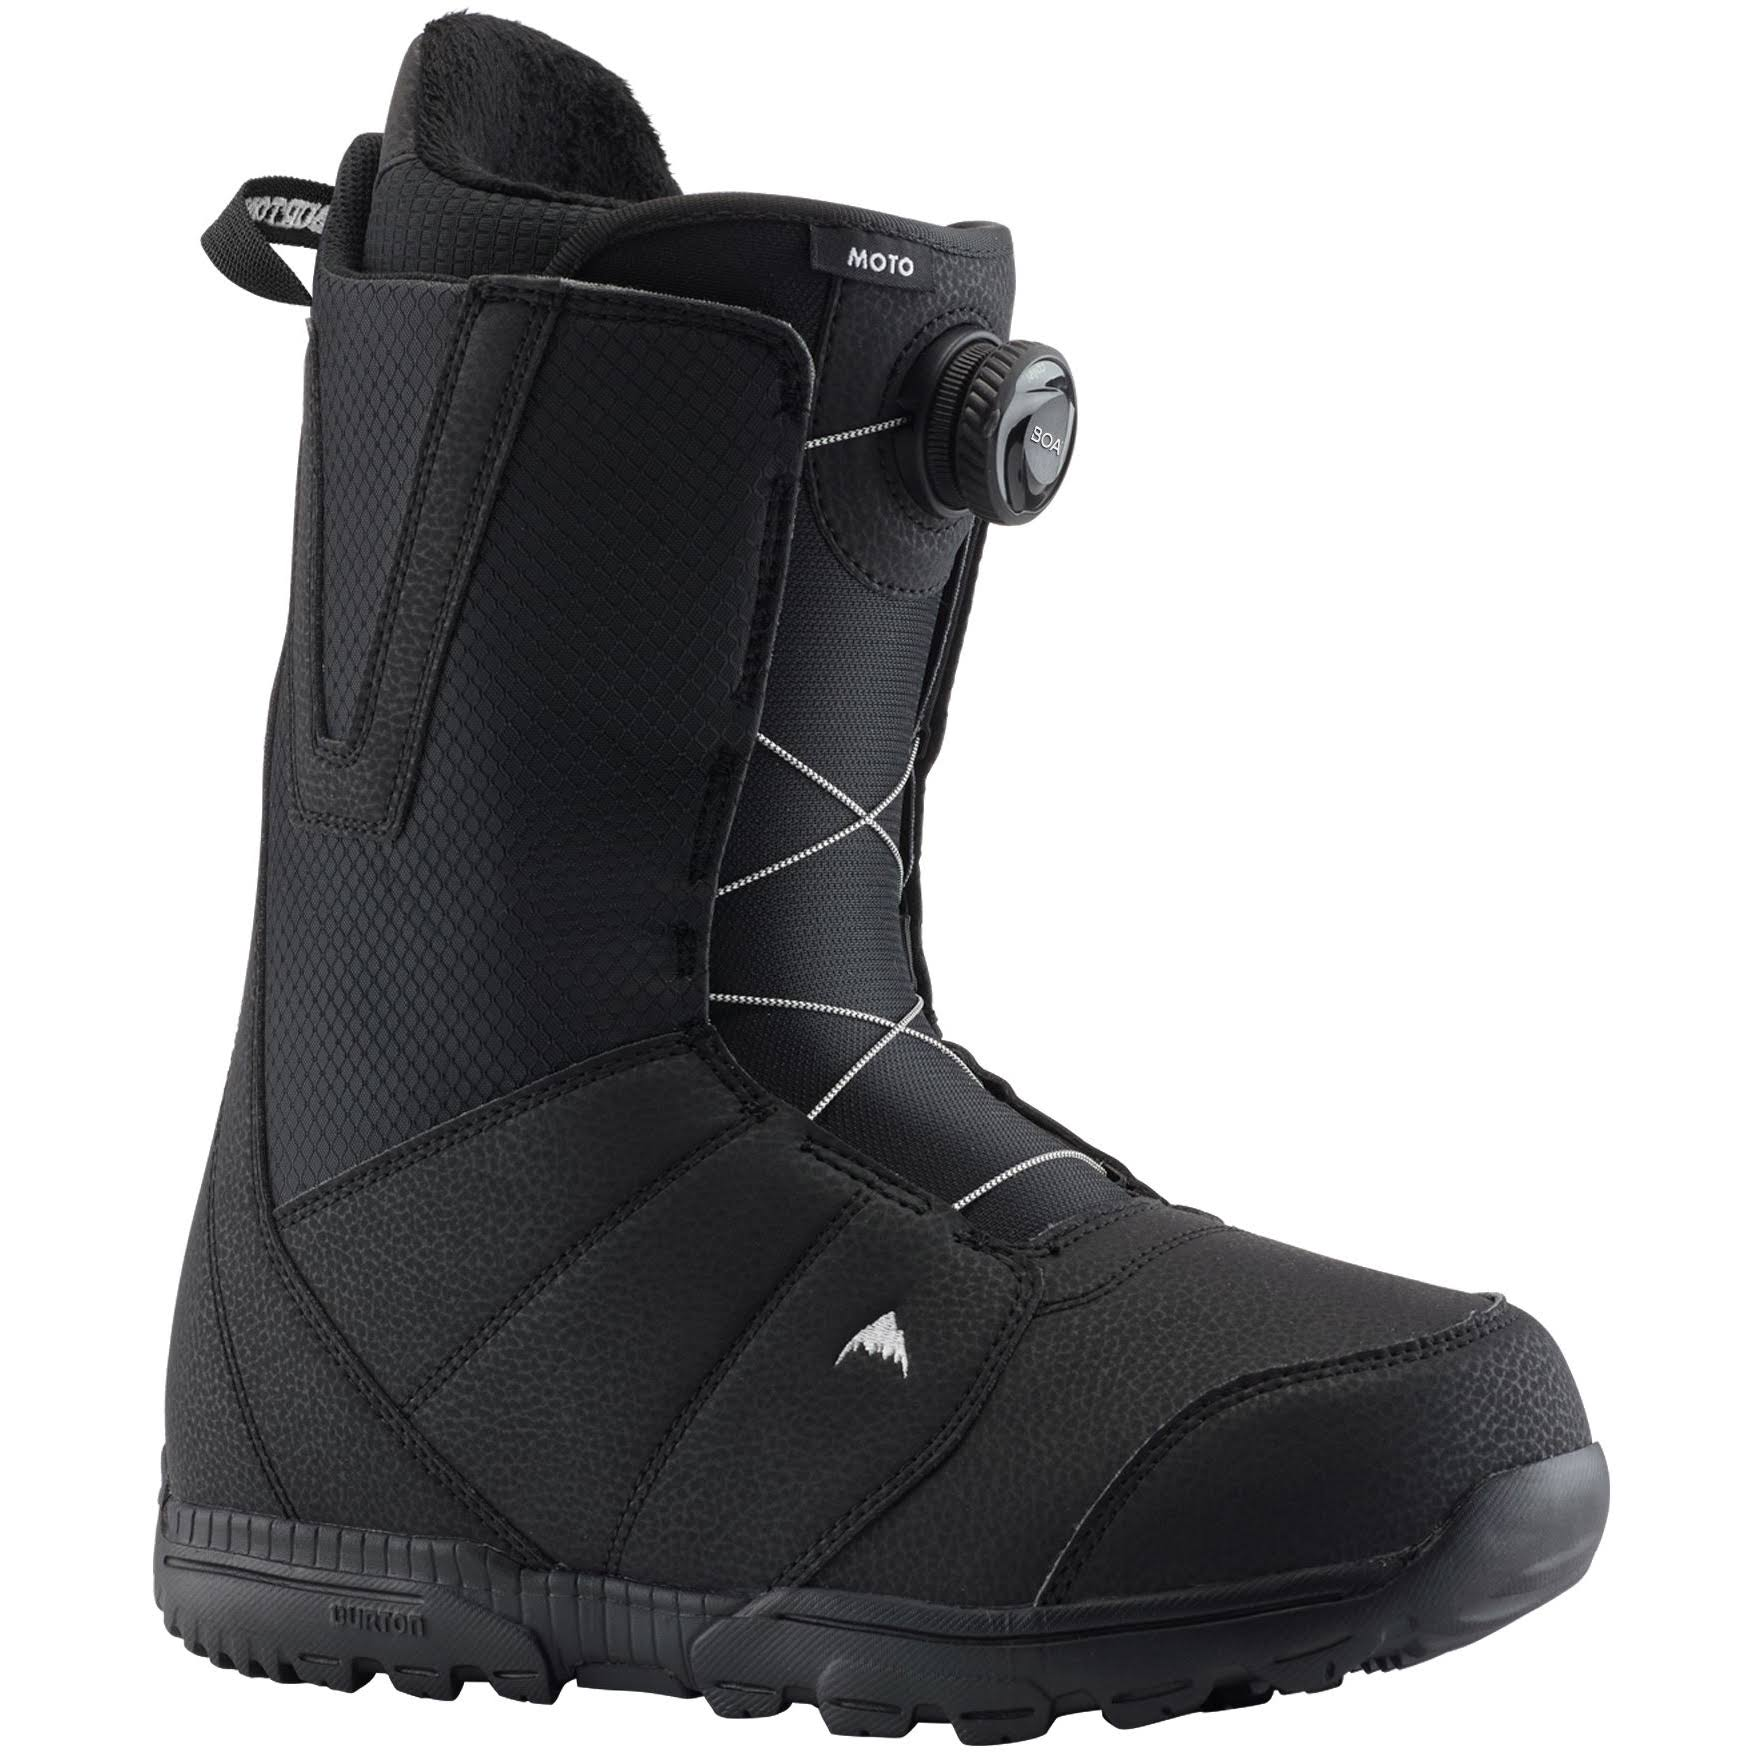 Burton Men's Moto Boa Snowboard Boot - Black, 10 US